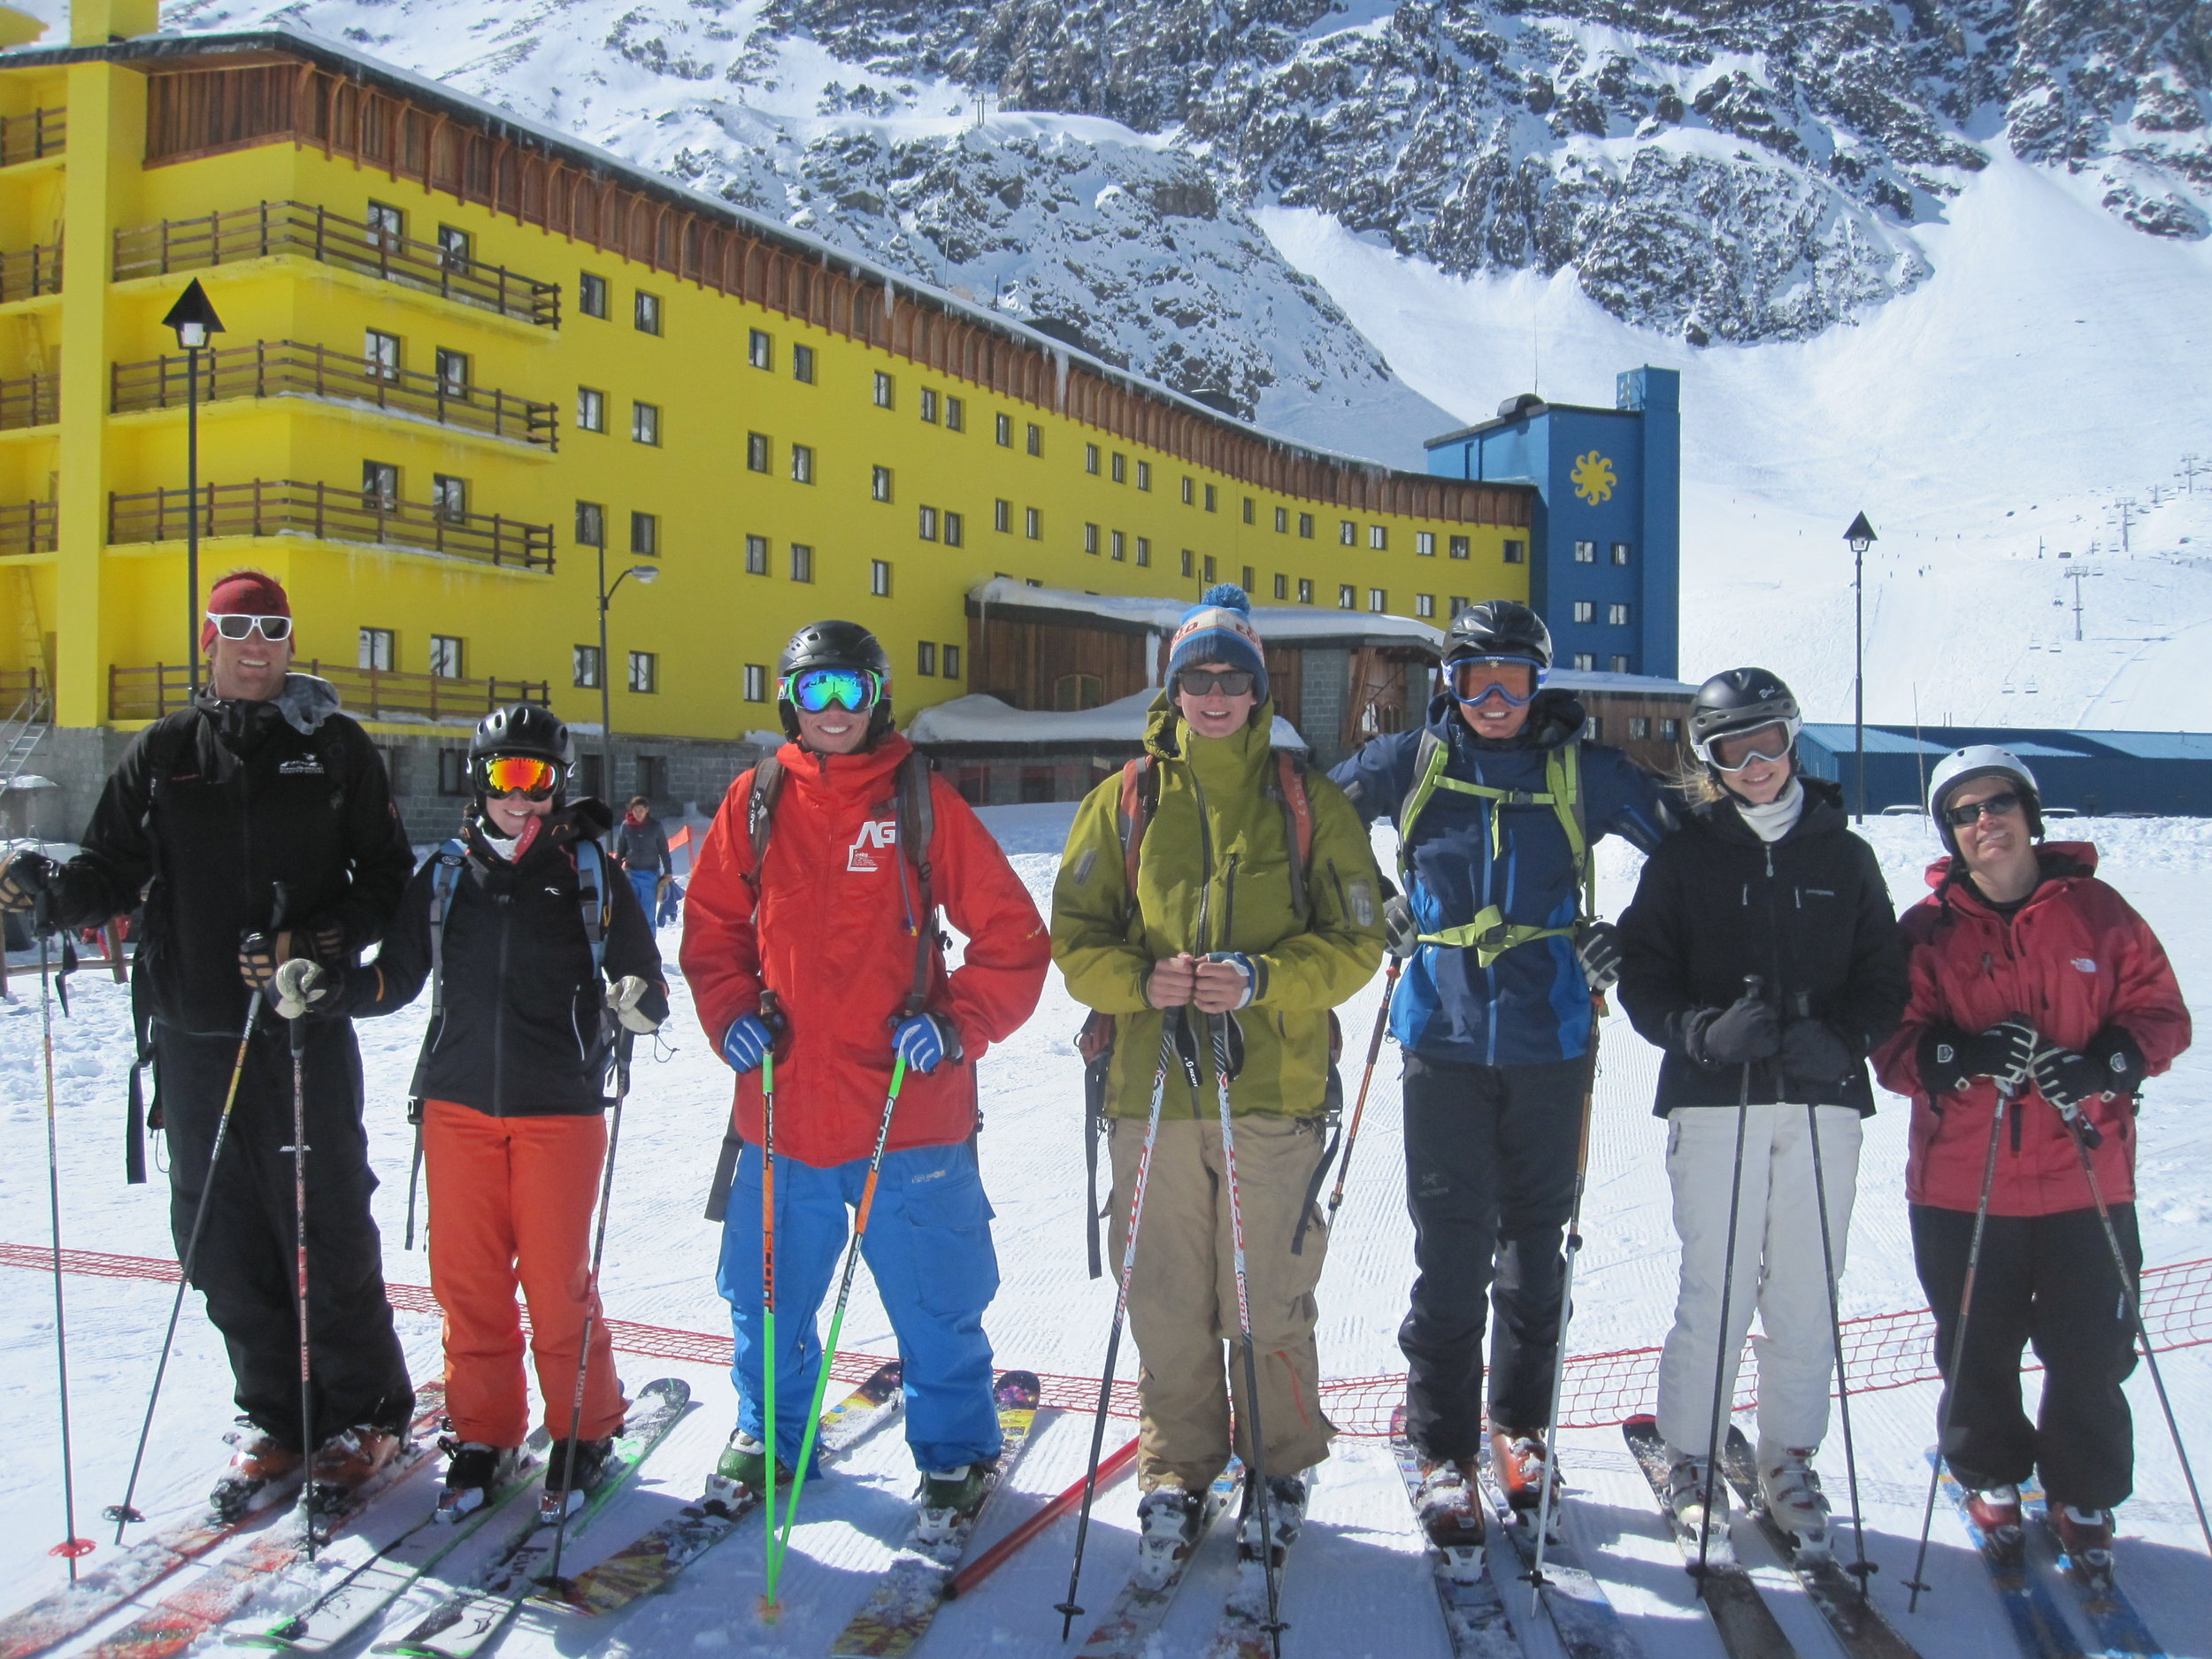 In 2011 Bailey and crew successfully hiked and skied Portillo's famous Super C. Bailey, in red, is all smiles for a good reason.